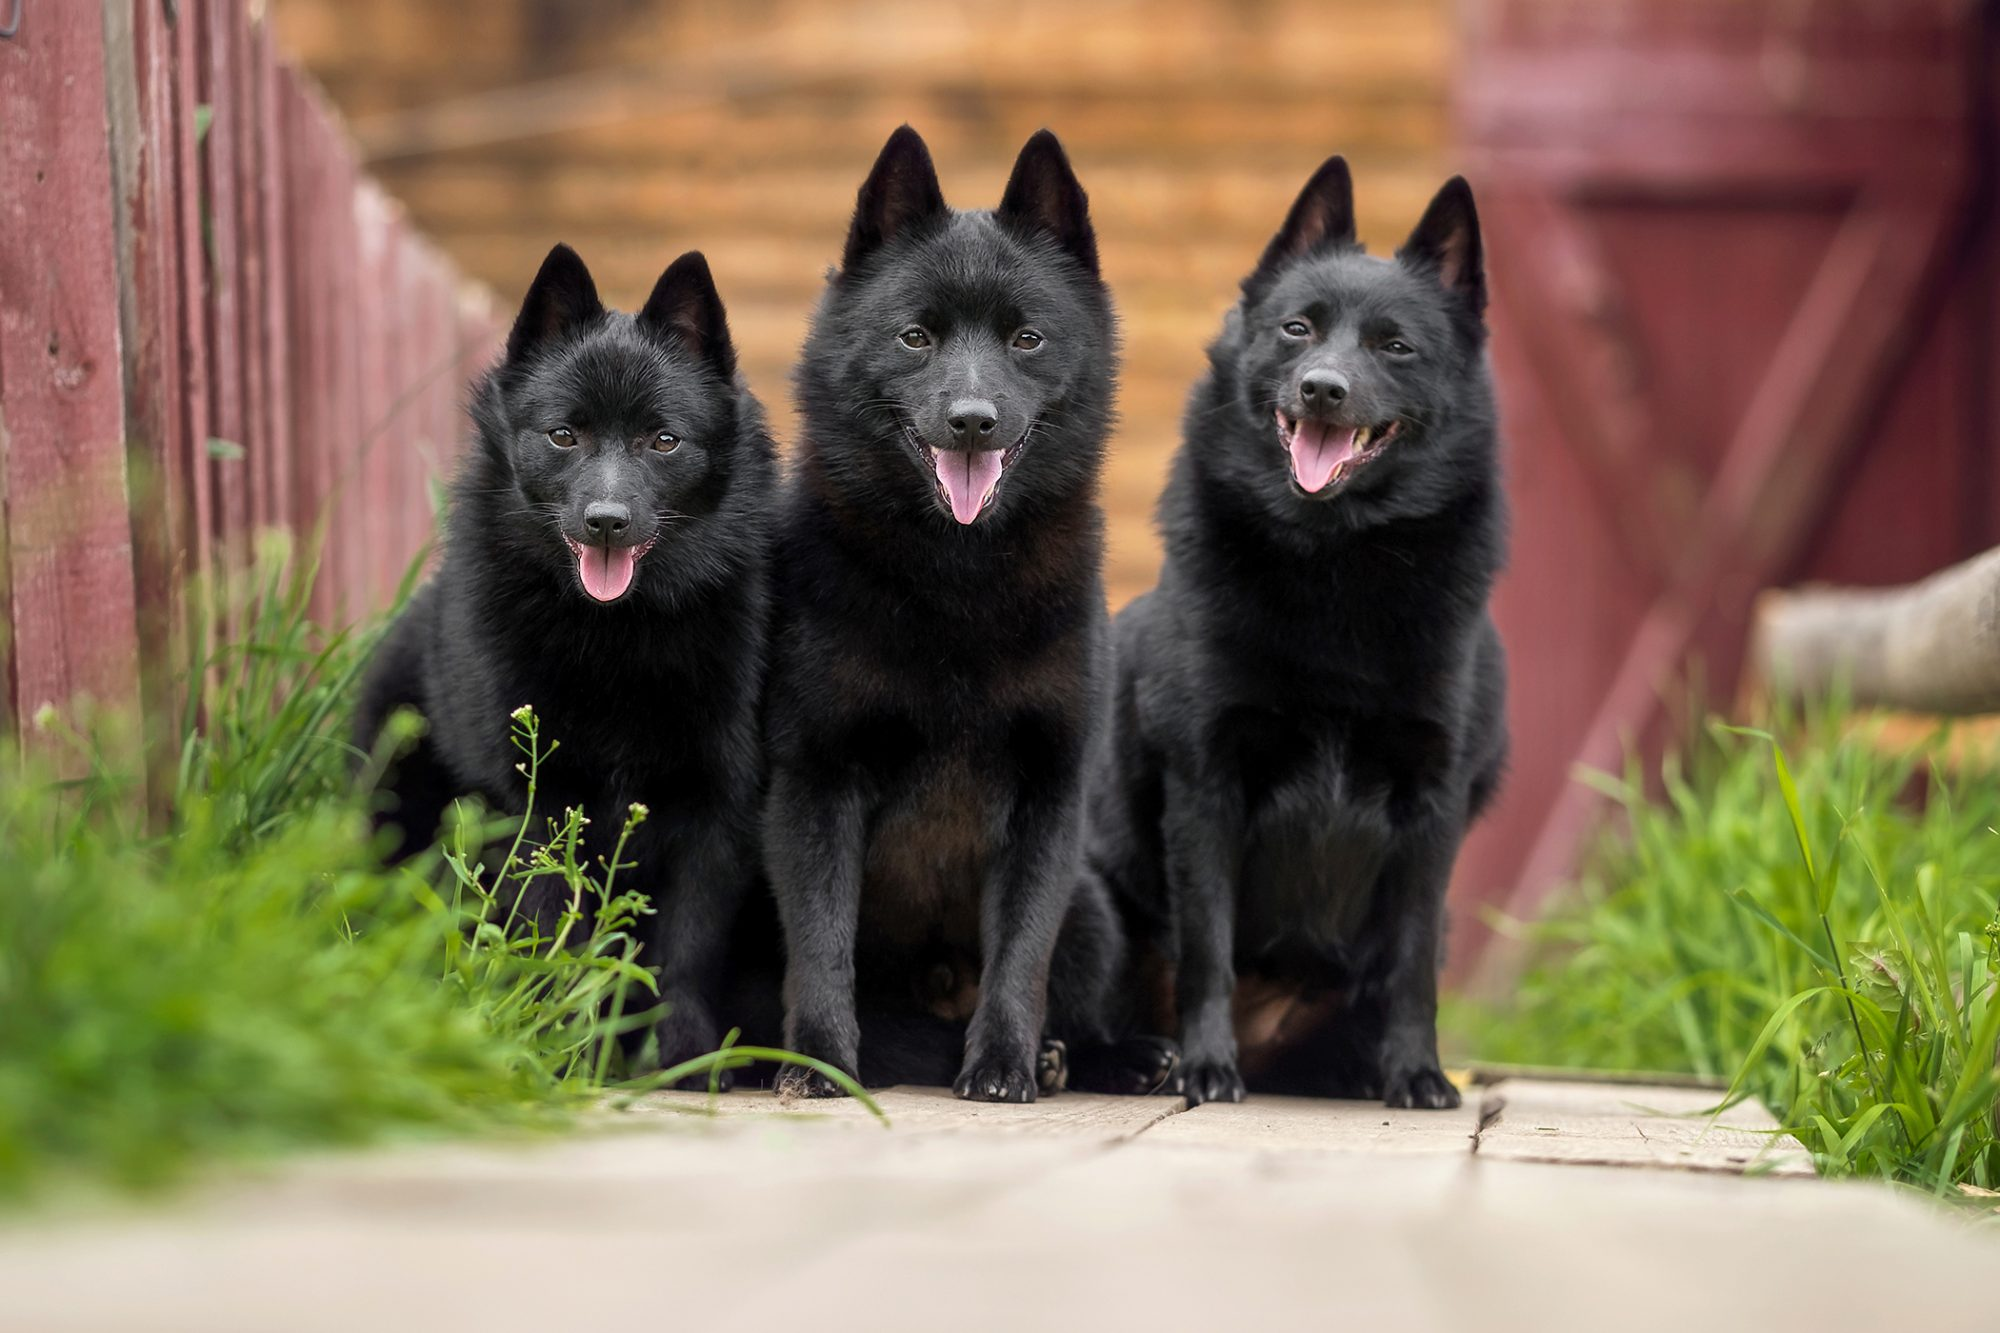 Three schipperke dogs outside with a red fence